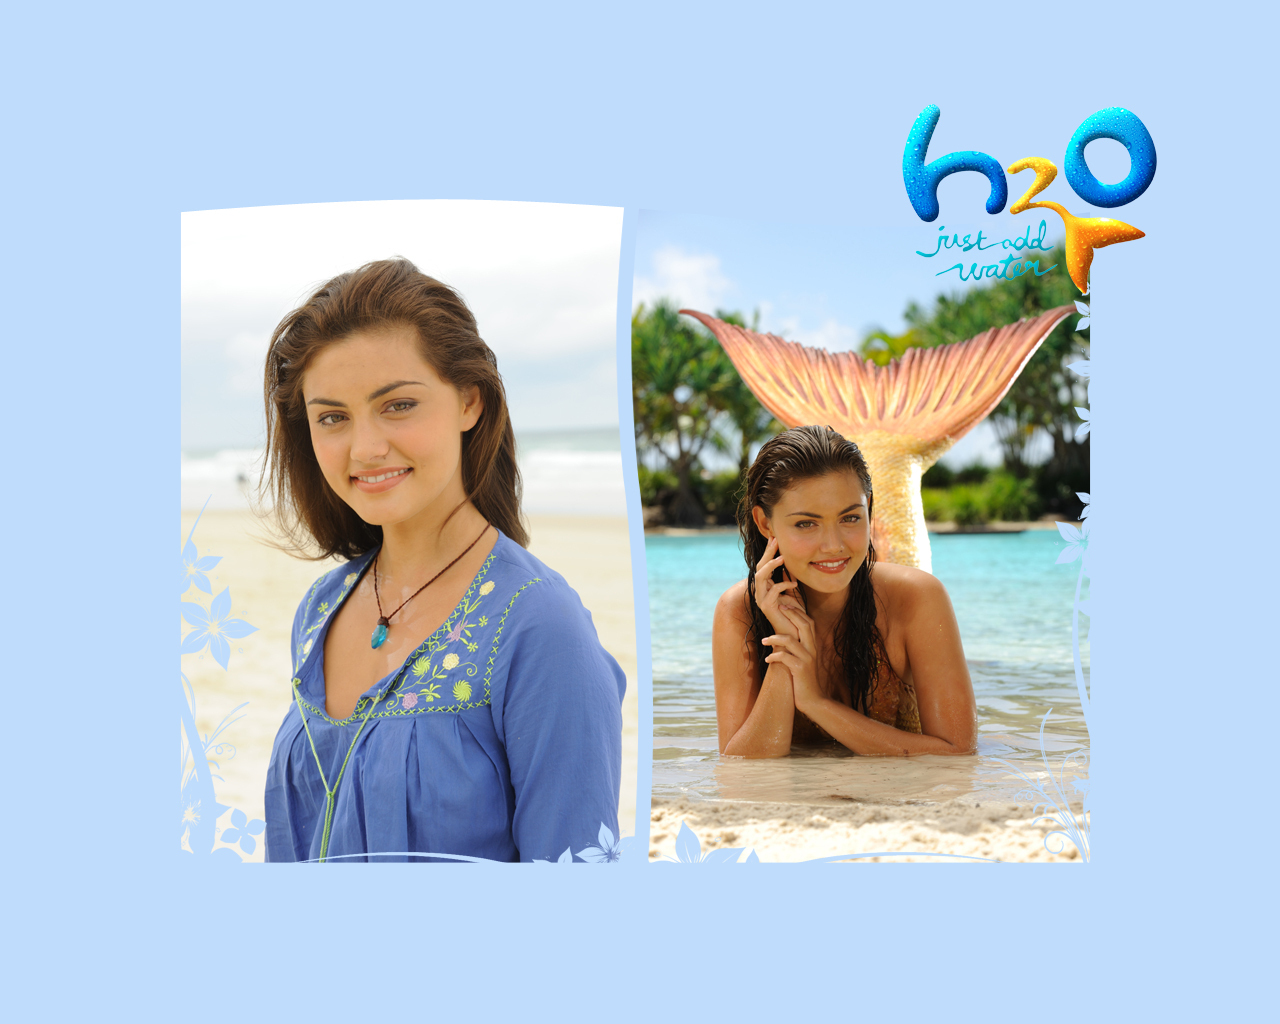 H2o cleo satori images cleo s3 hd wallpaper and background for H20 just add water wallpaper